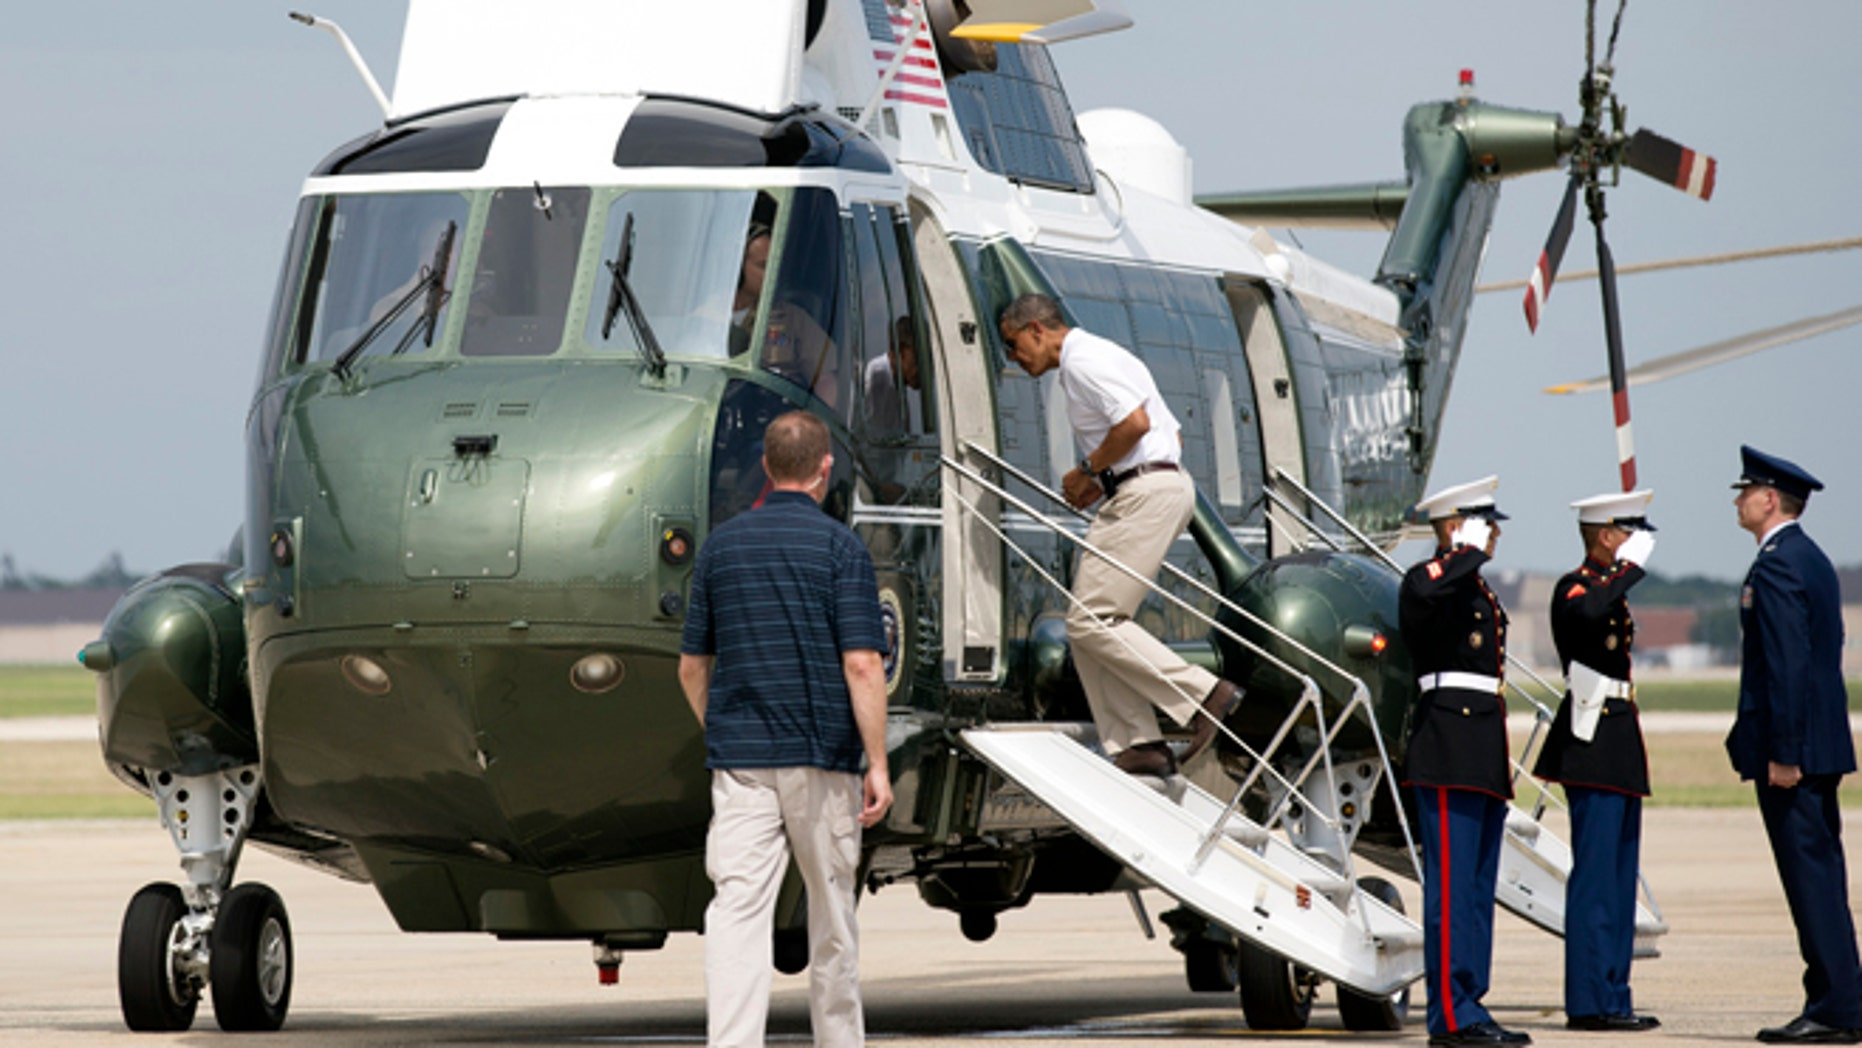 Aug 3, 2013: President Barack Obama, second from left, jogs up the ramp of Marine One as he leaves Andrews Air Force Base, Md., for a weekend in Camp David.